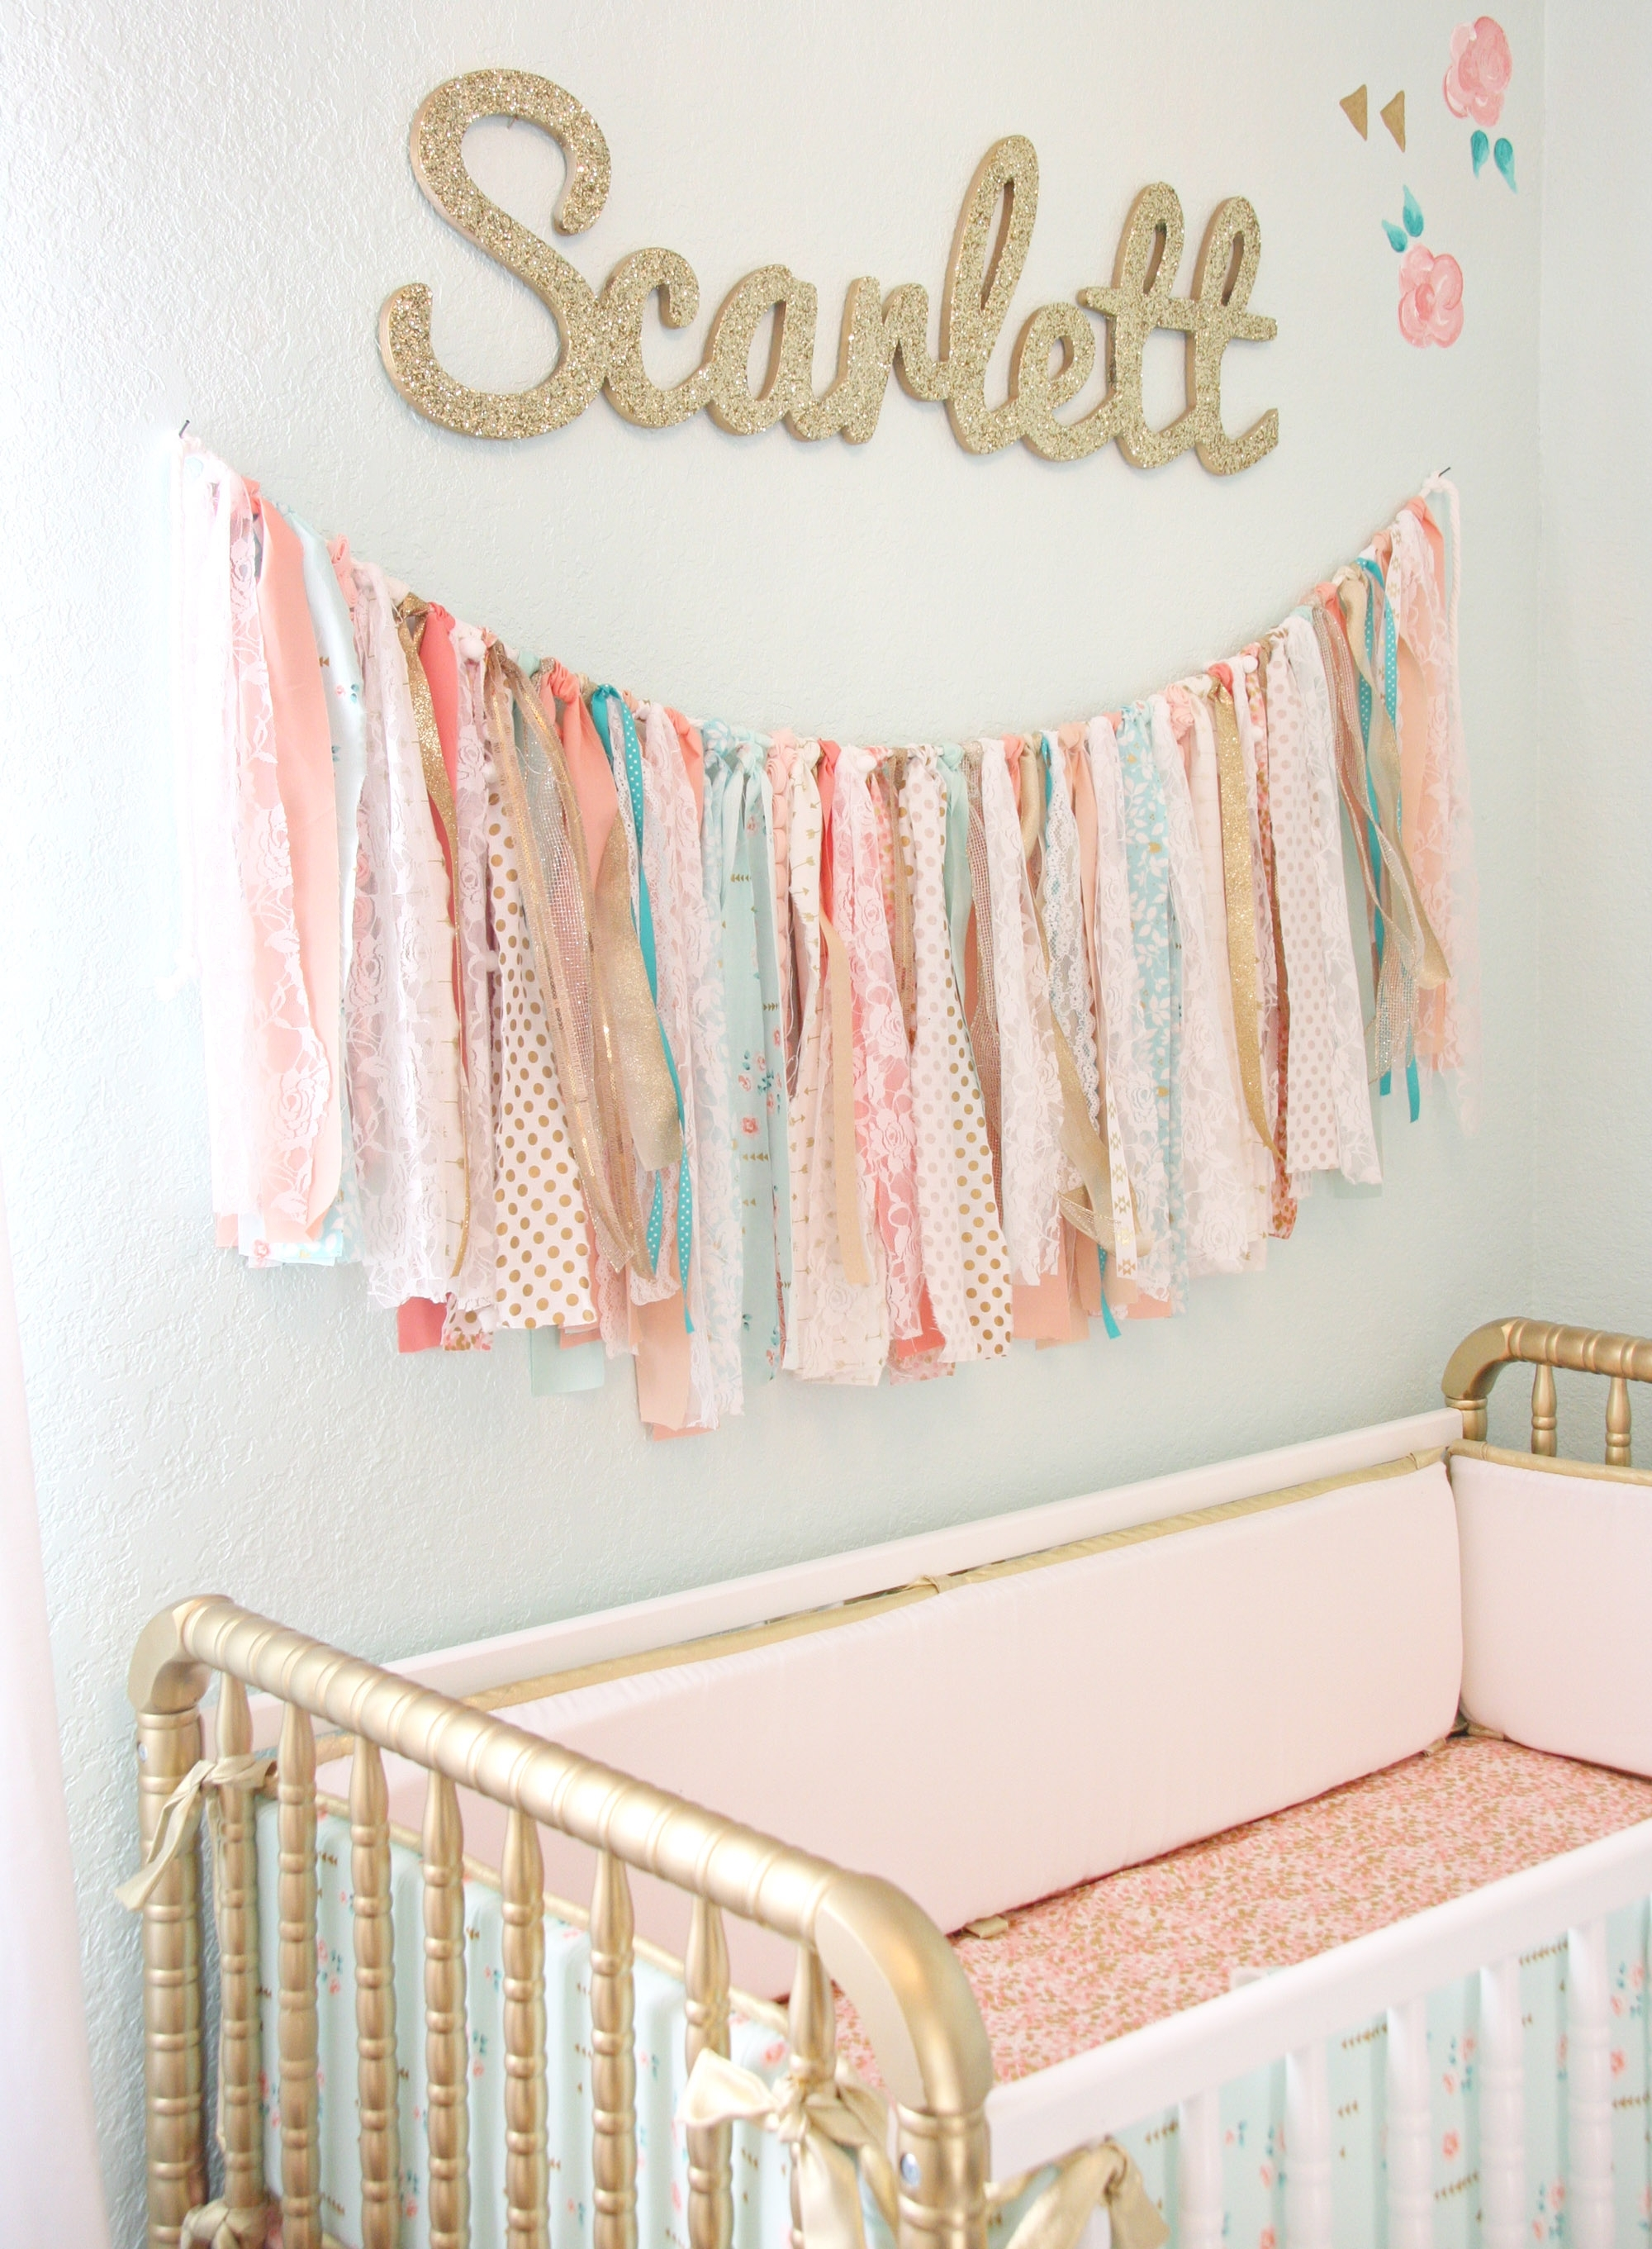 Coral, Mint, And Gold Vintage Style: Scarlett's Nursery Reveal Regarding Most Current Fabric Wall Art For Nursery (View 4 of 15)